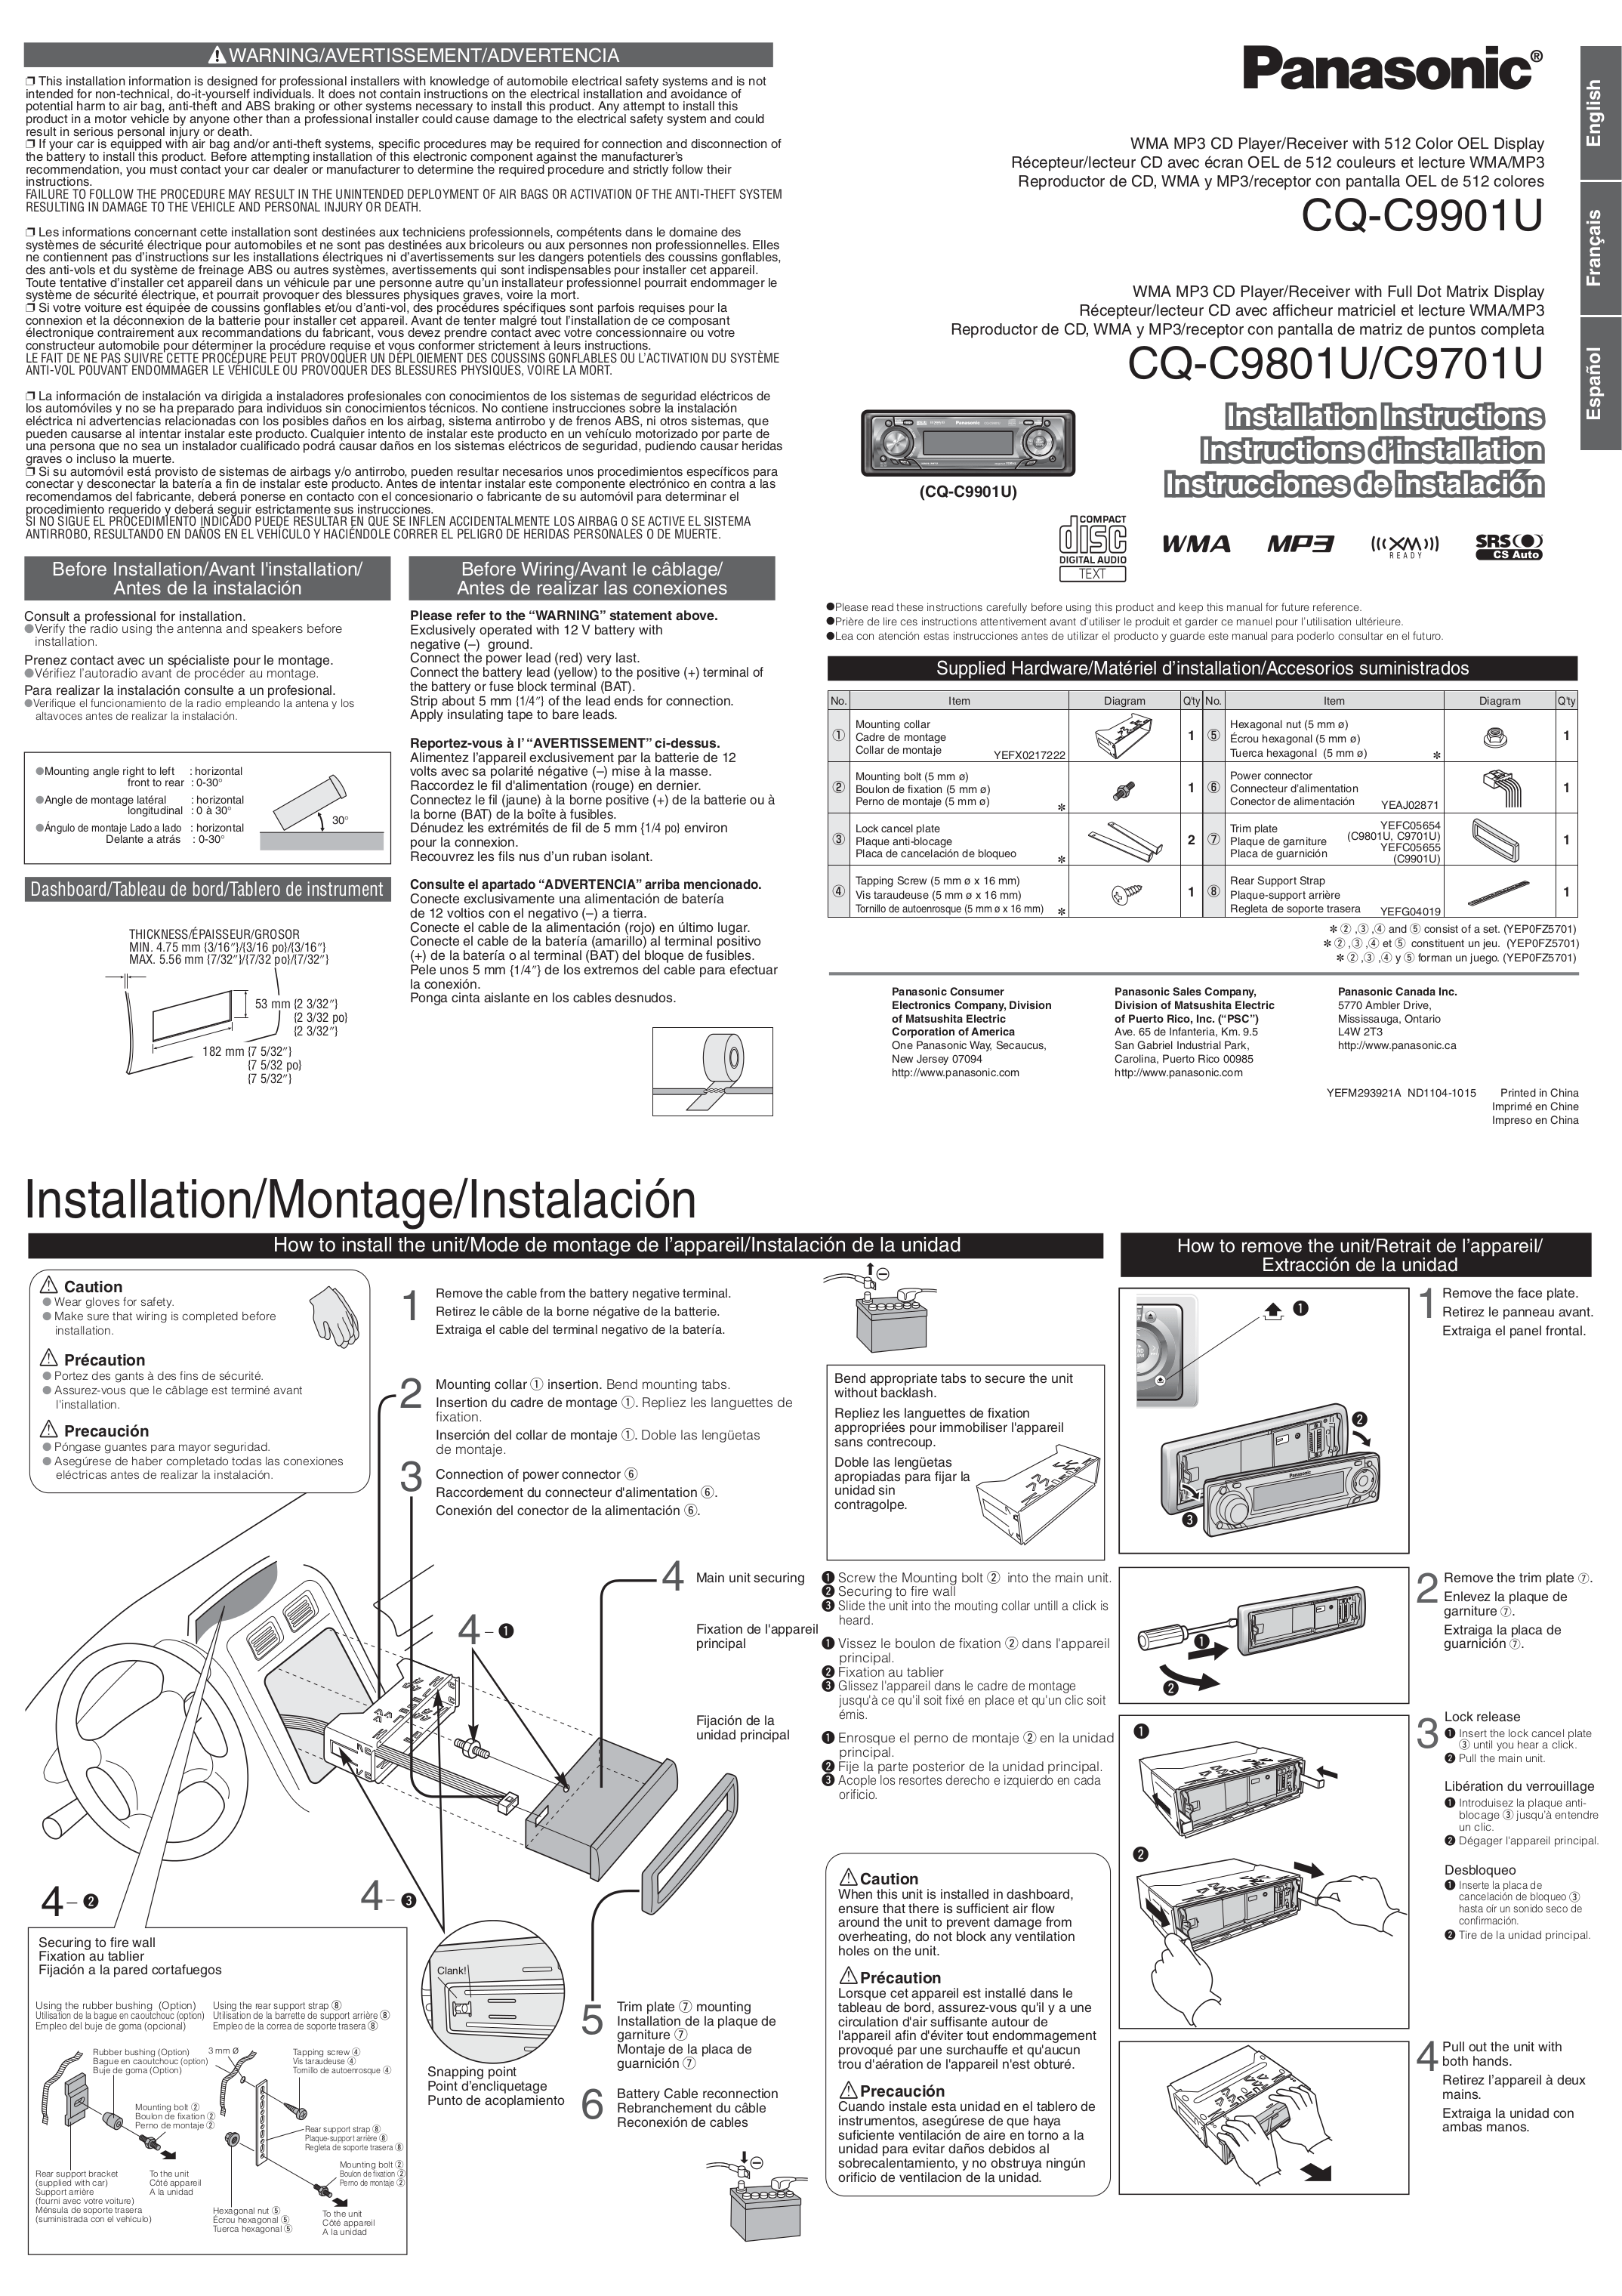 Download free pdf for Panasonic CQ-C9701U Car Receiver manual